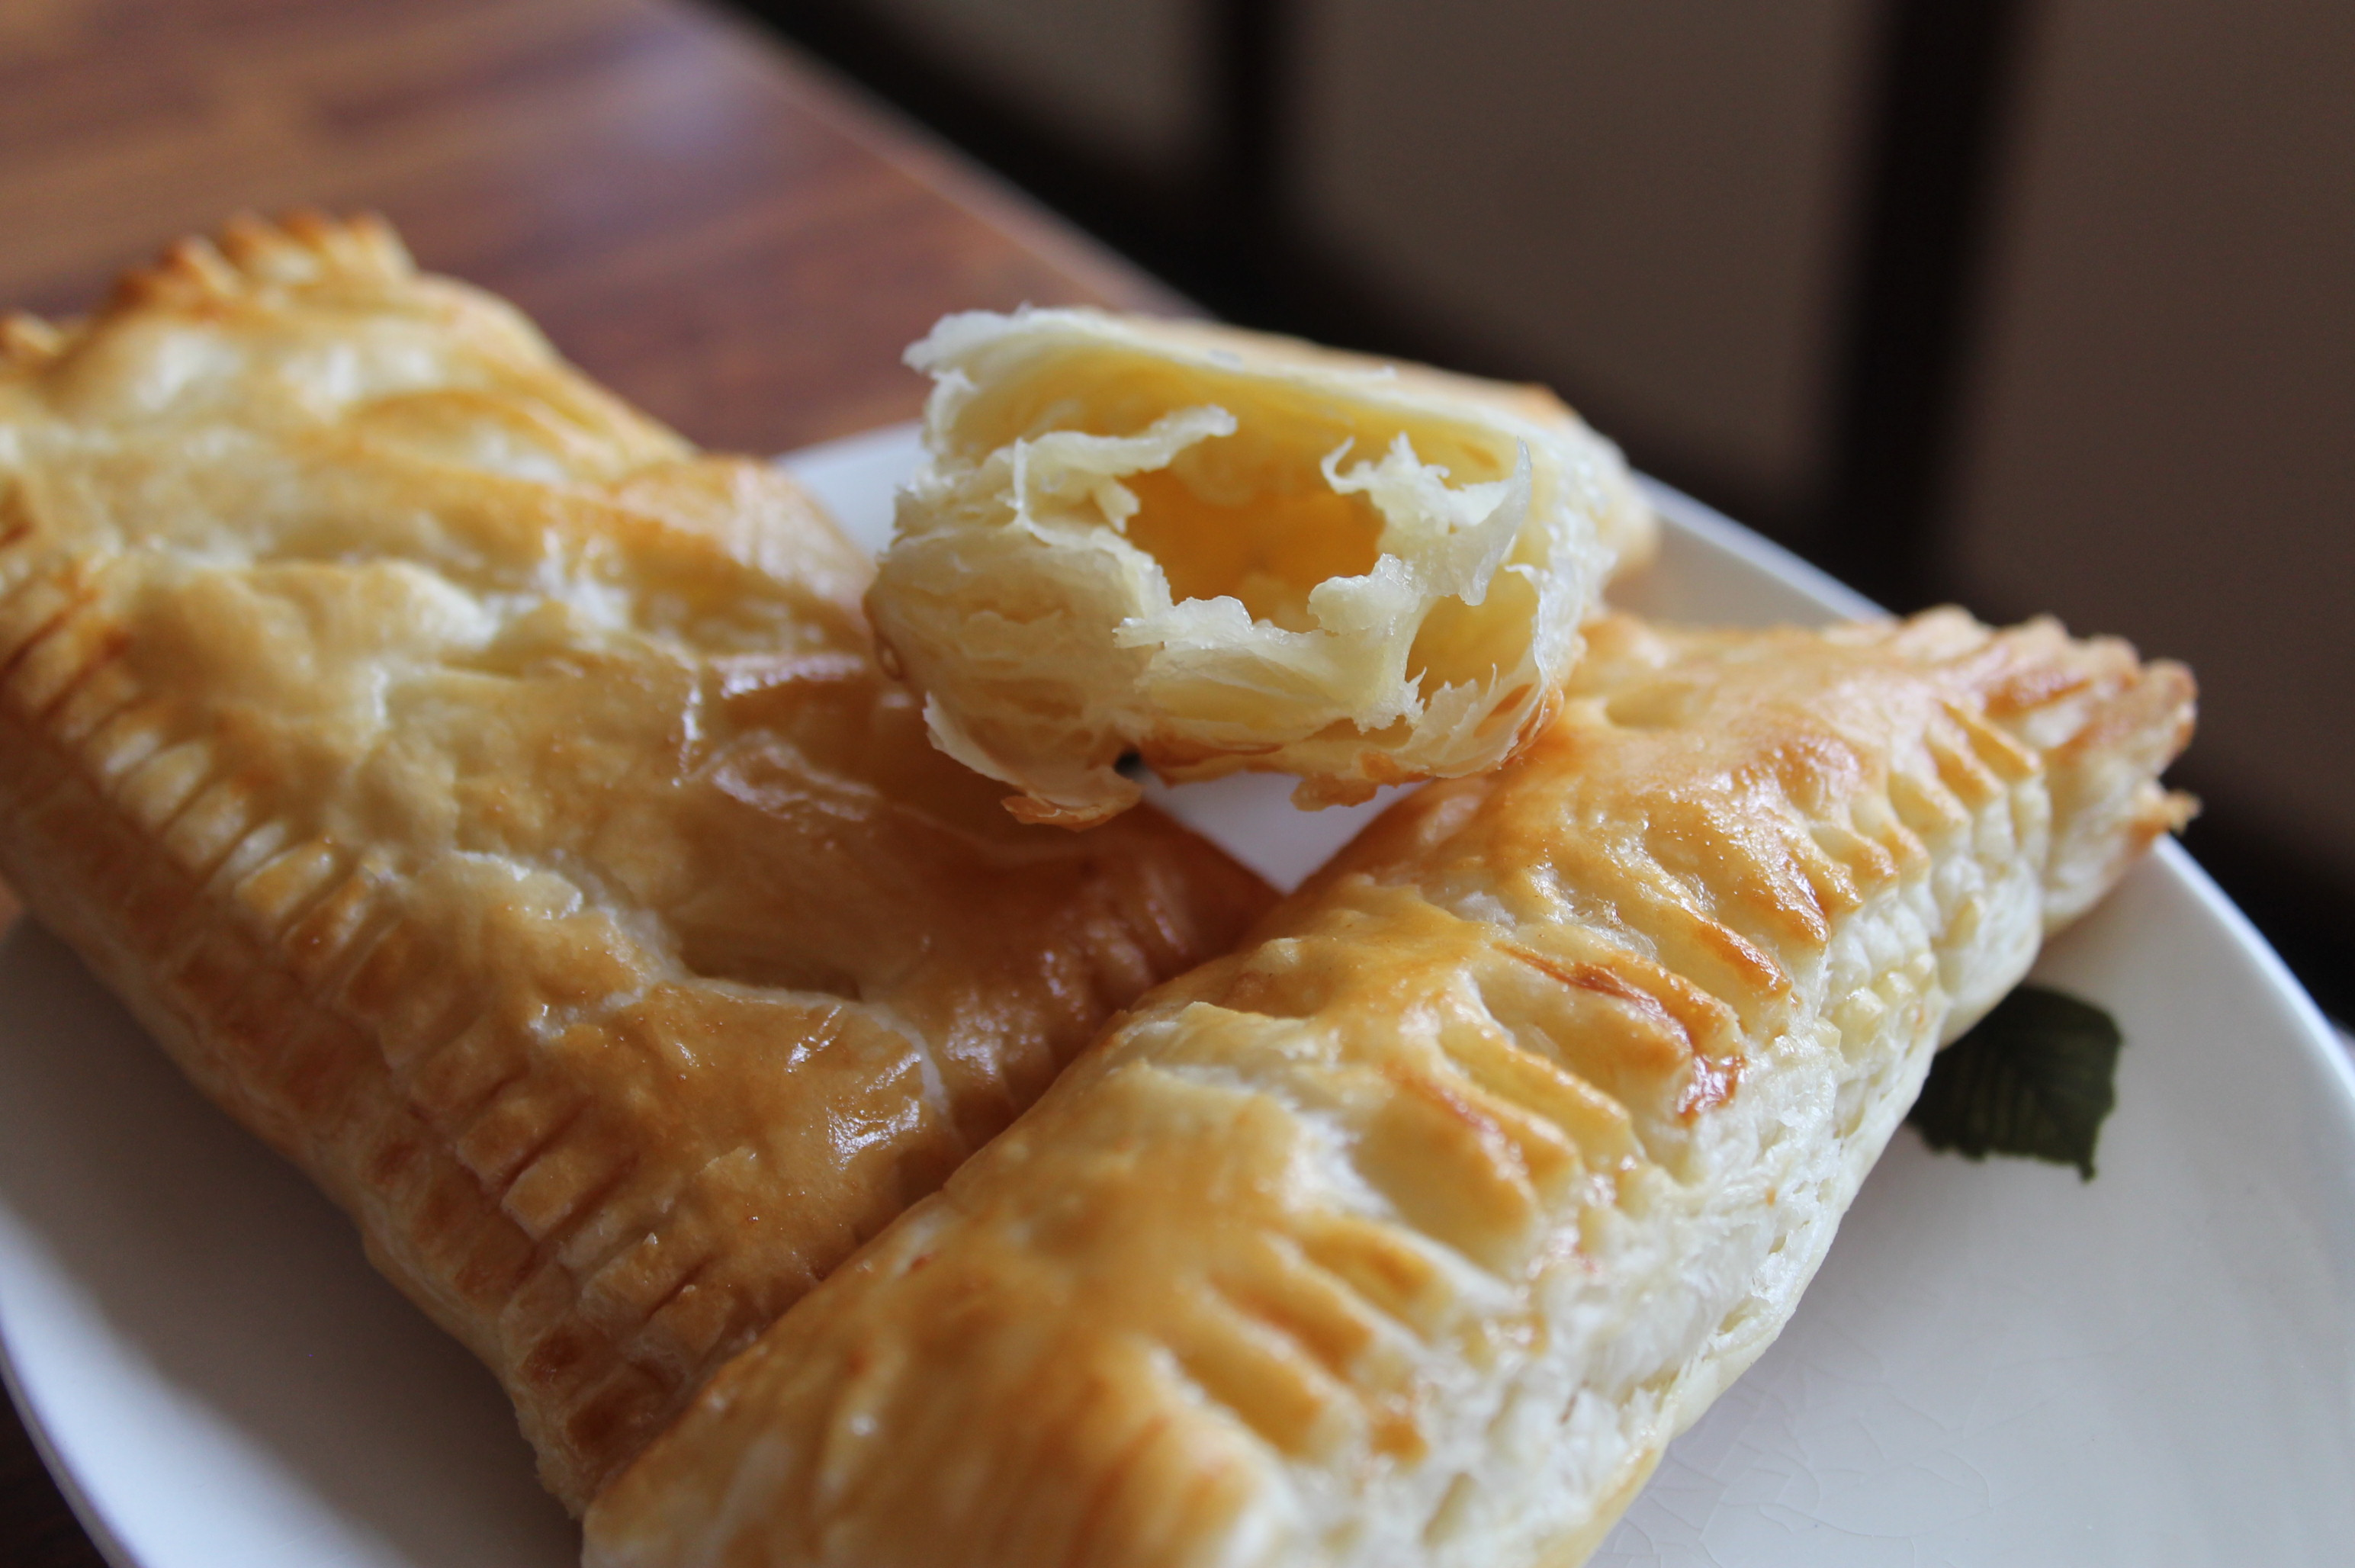 Recipe �C Cheese Pastries �C Tea Blog3088 x 2056 jpeg 853kB